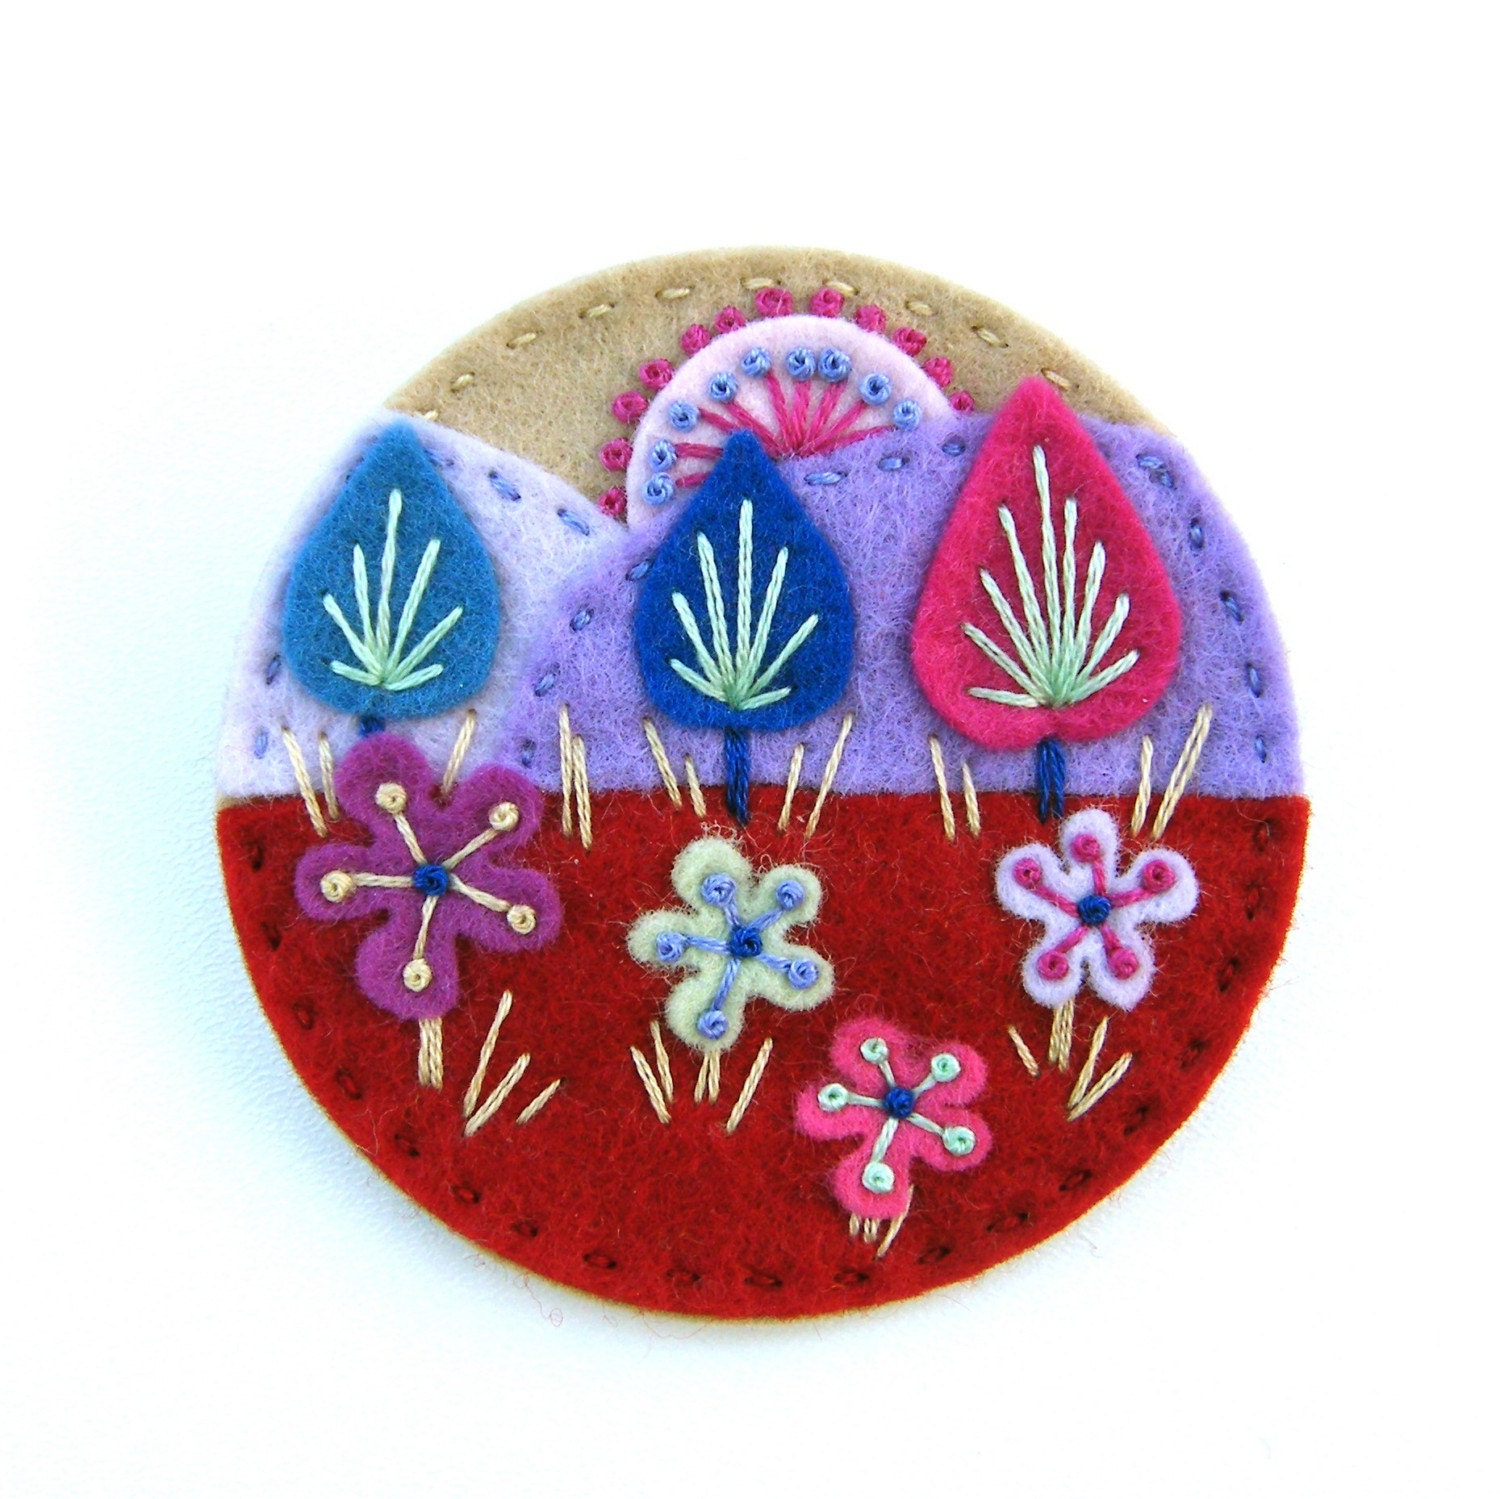 TREESCAPE FELT BROOCH PIN WITH FREEFORM EMBROIDERY